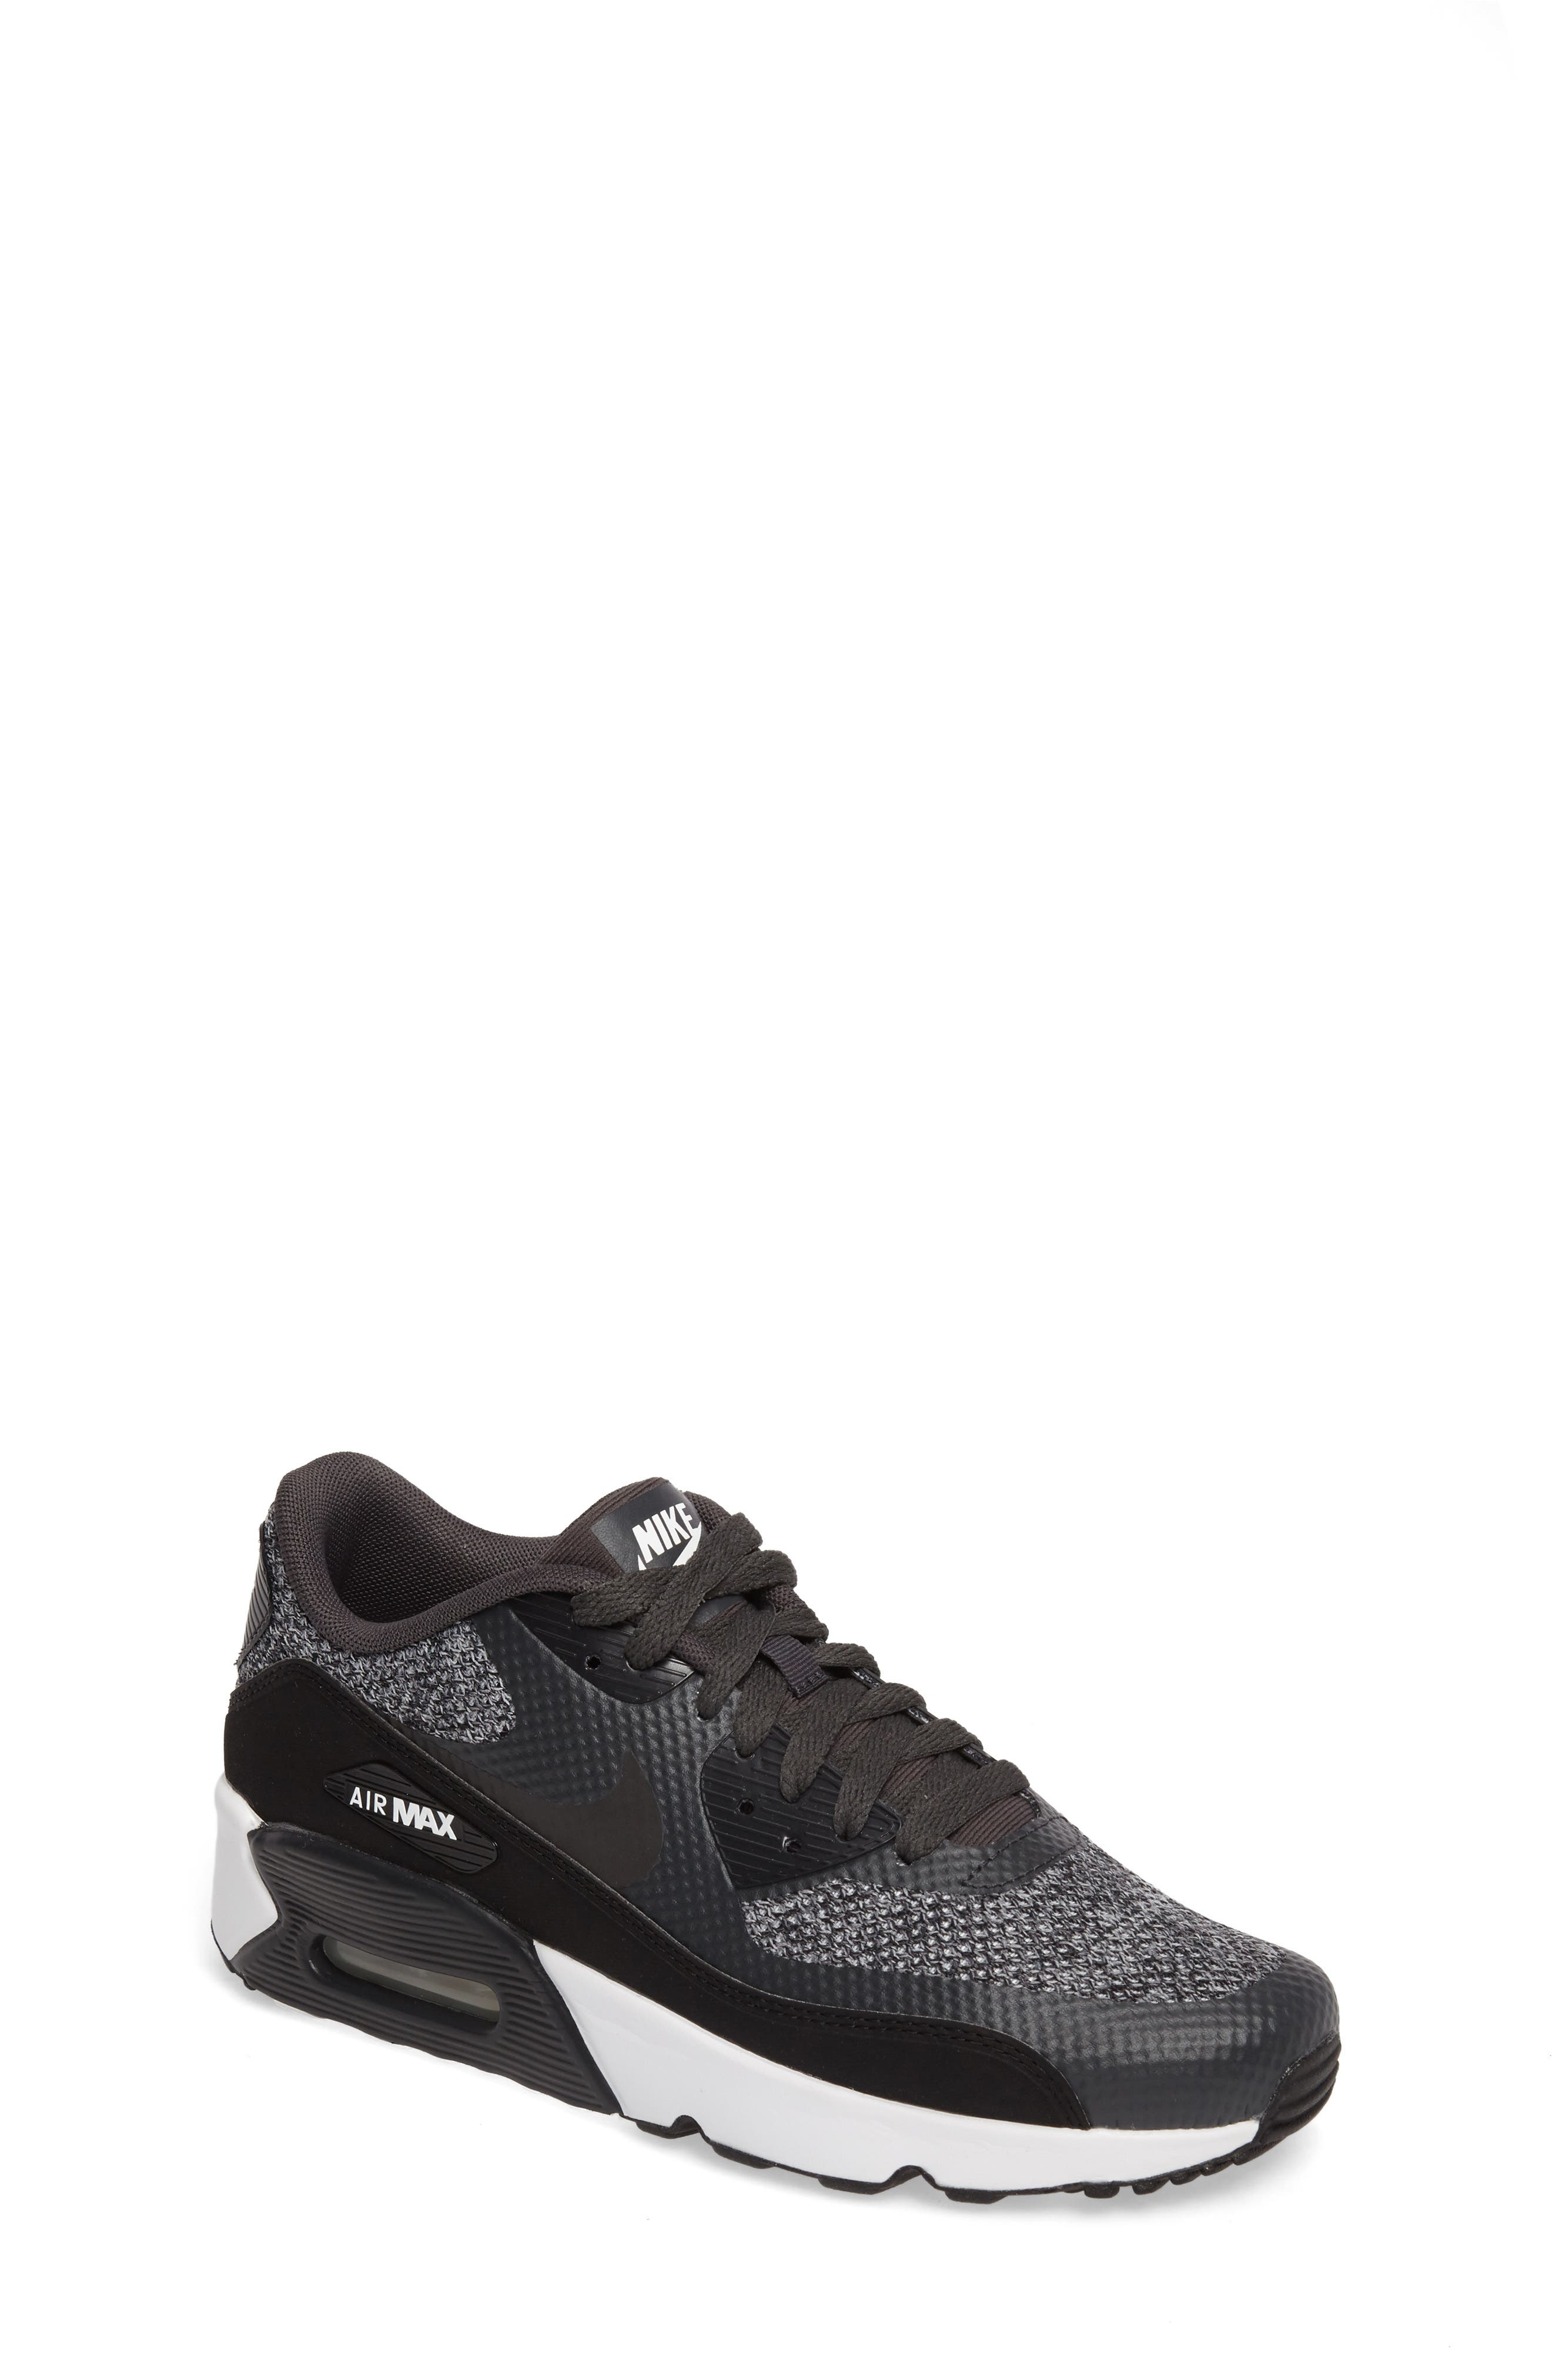 Nike Air Max 90 Ultra 2.0 SE Sneaker (Big Kid)